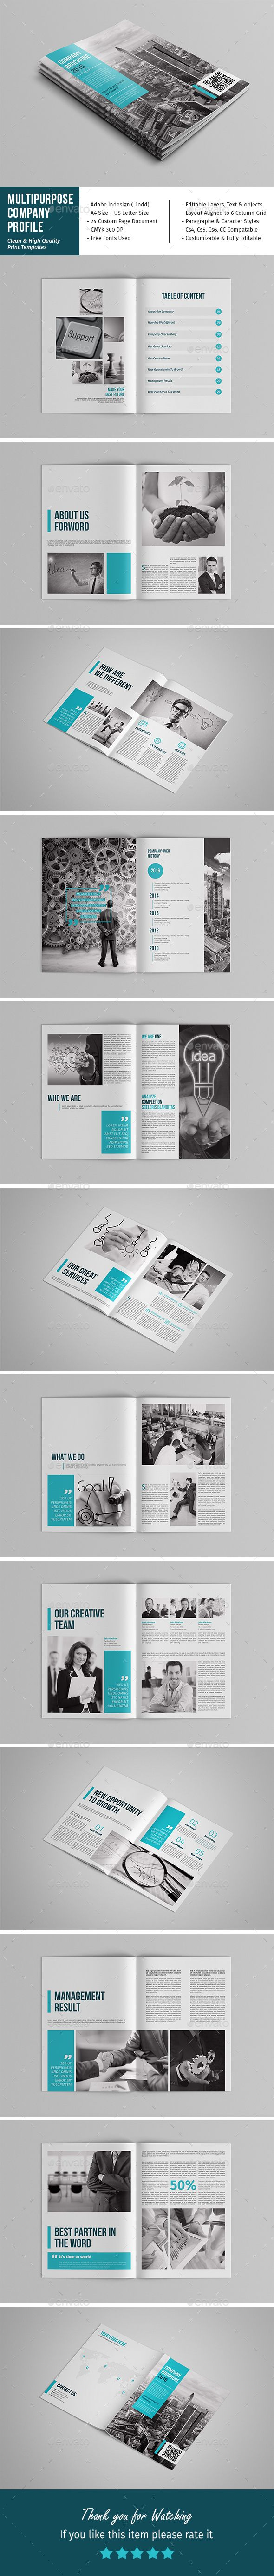 Multipurpose Company Profile | Diseño editorial y Editorial